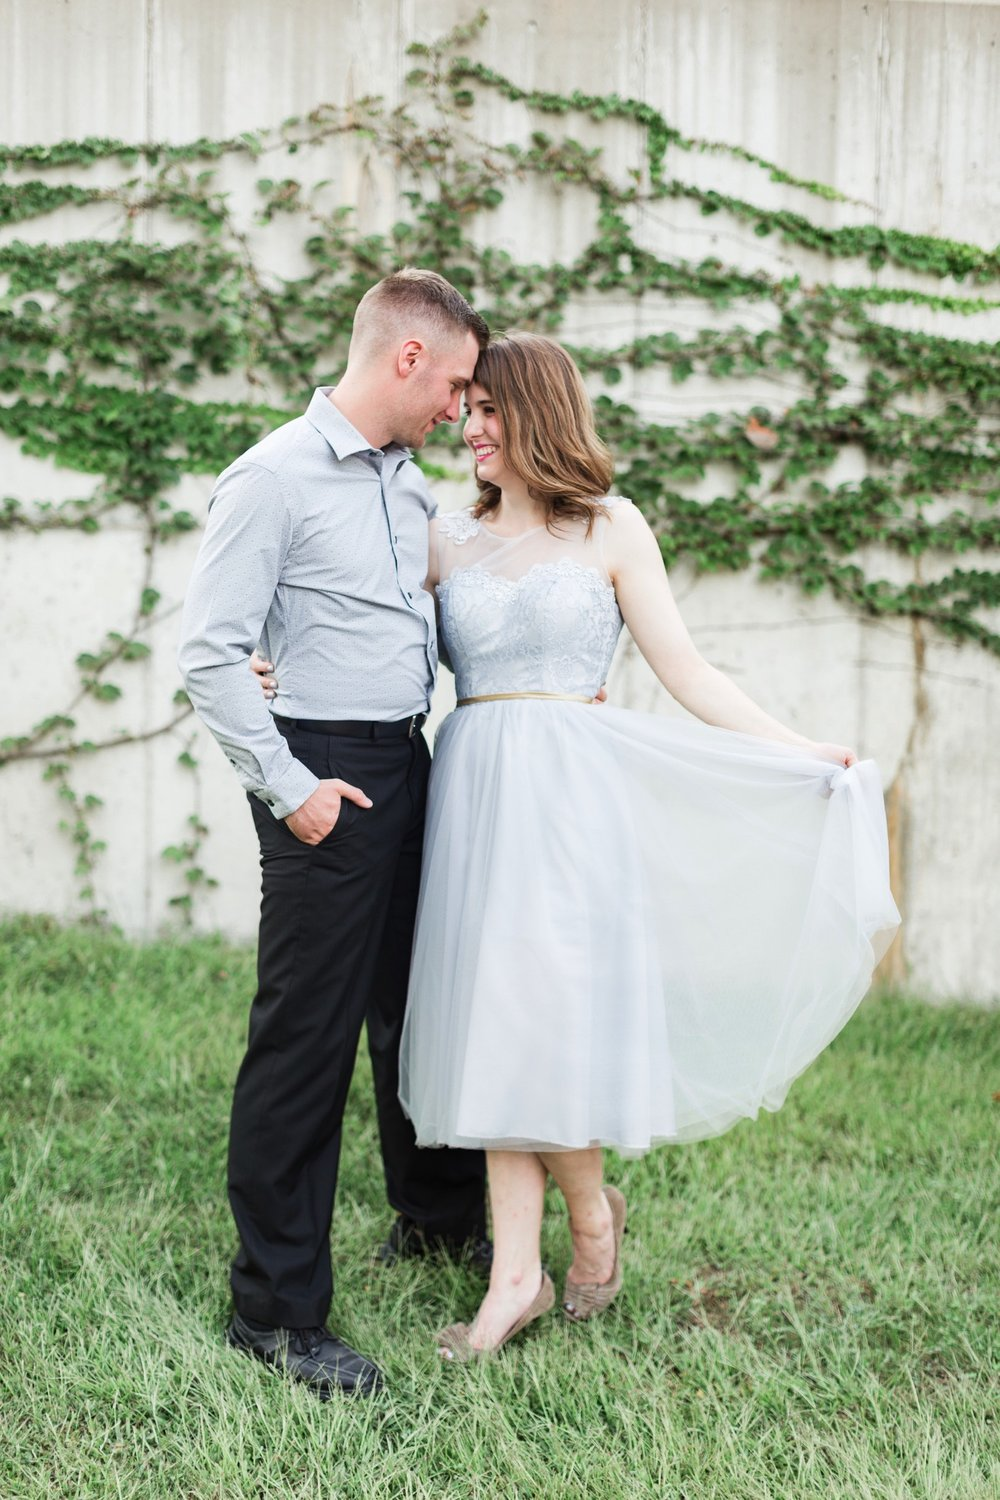 008_Abigail Berge Photography-Engagement-35.jpg